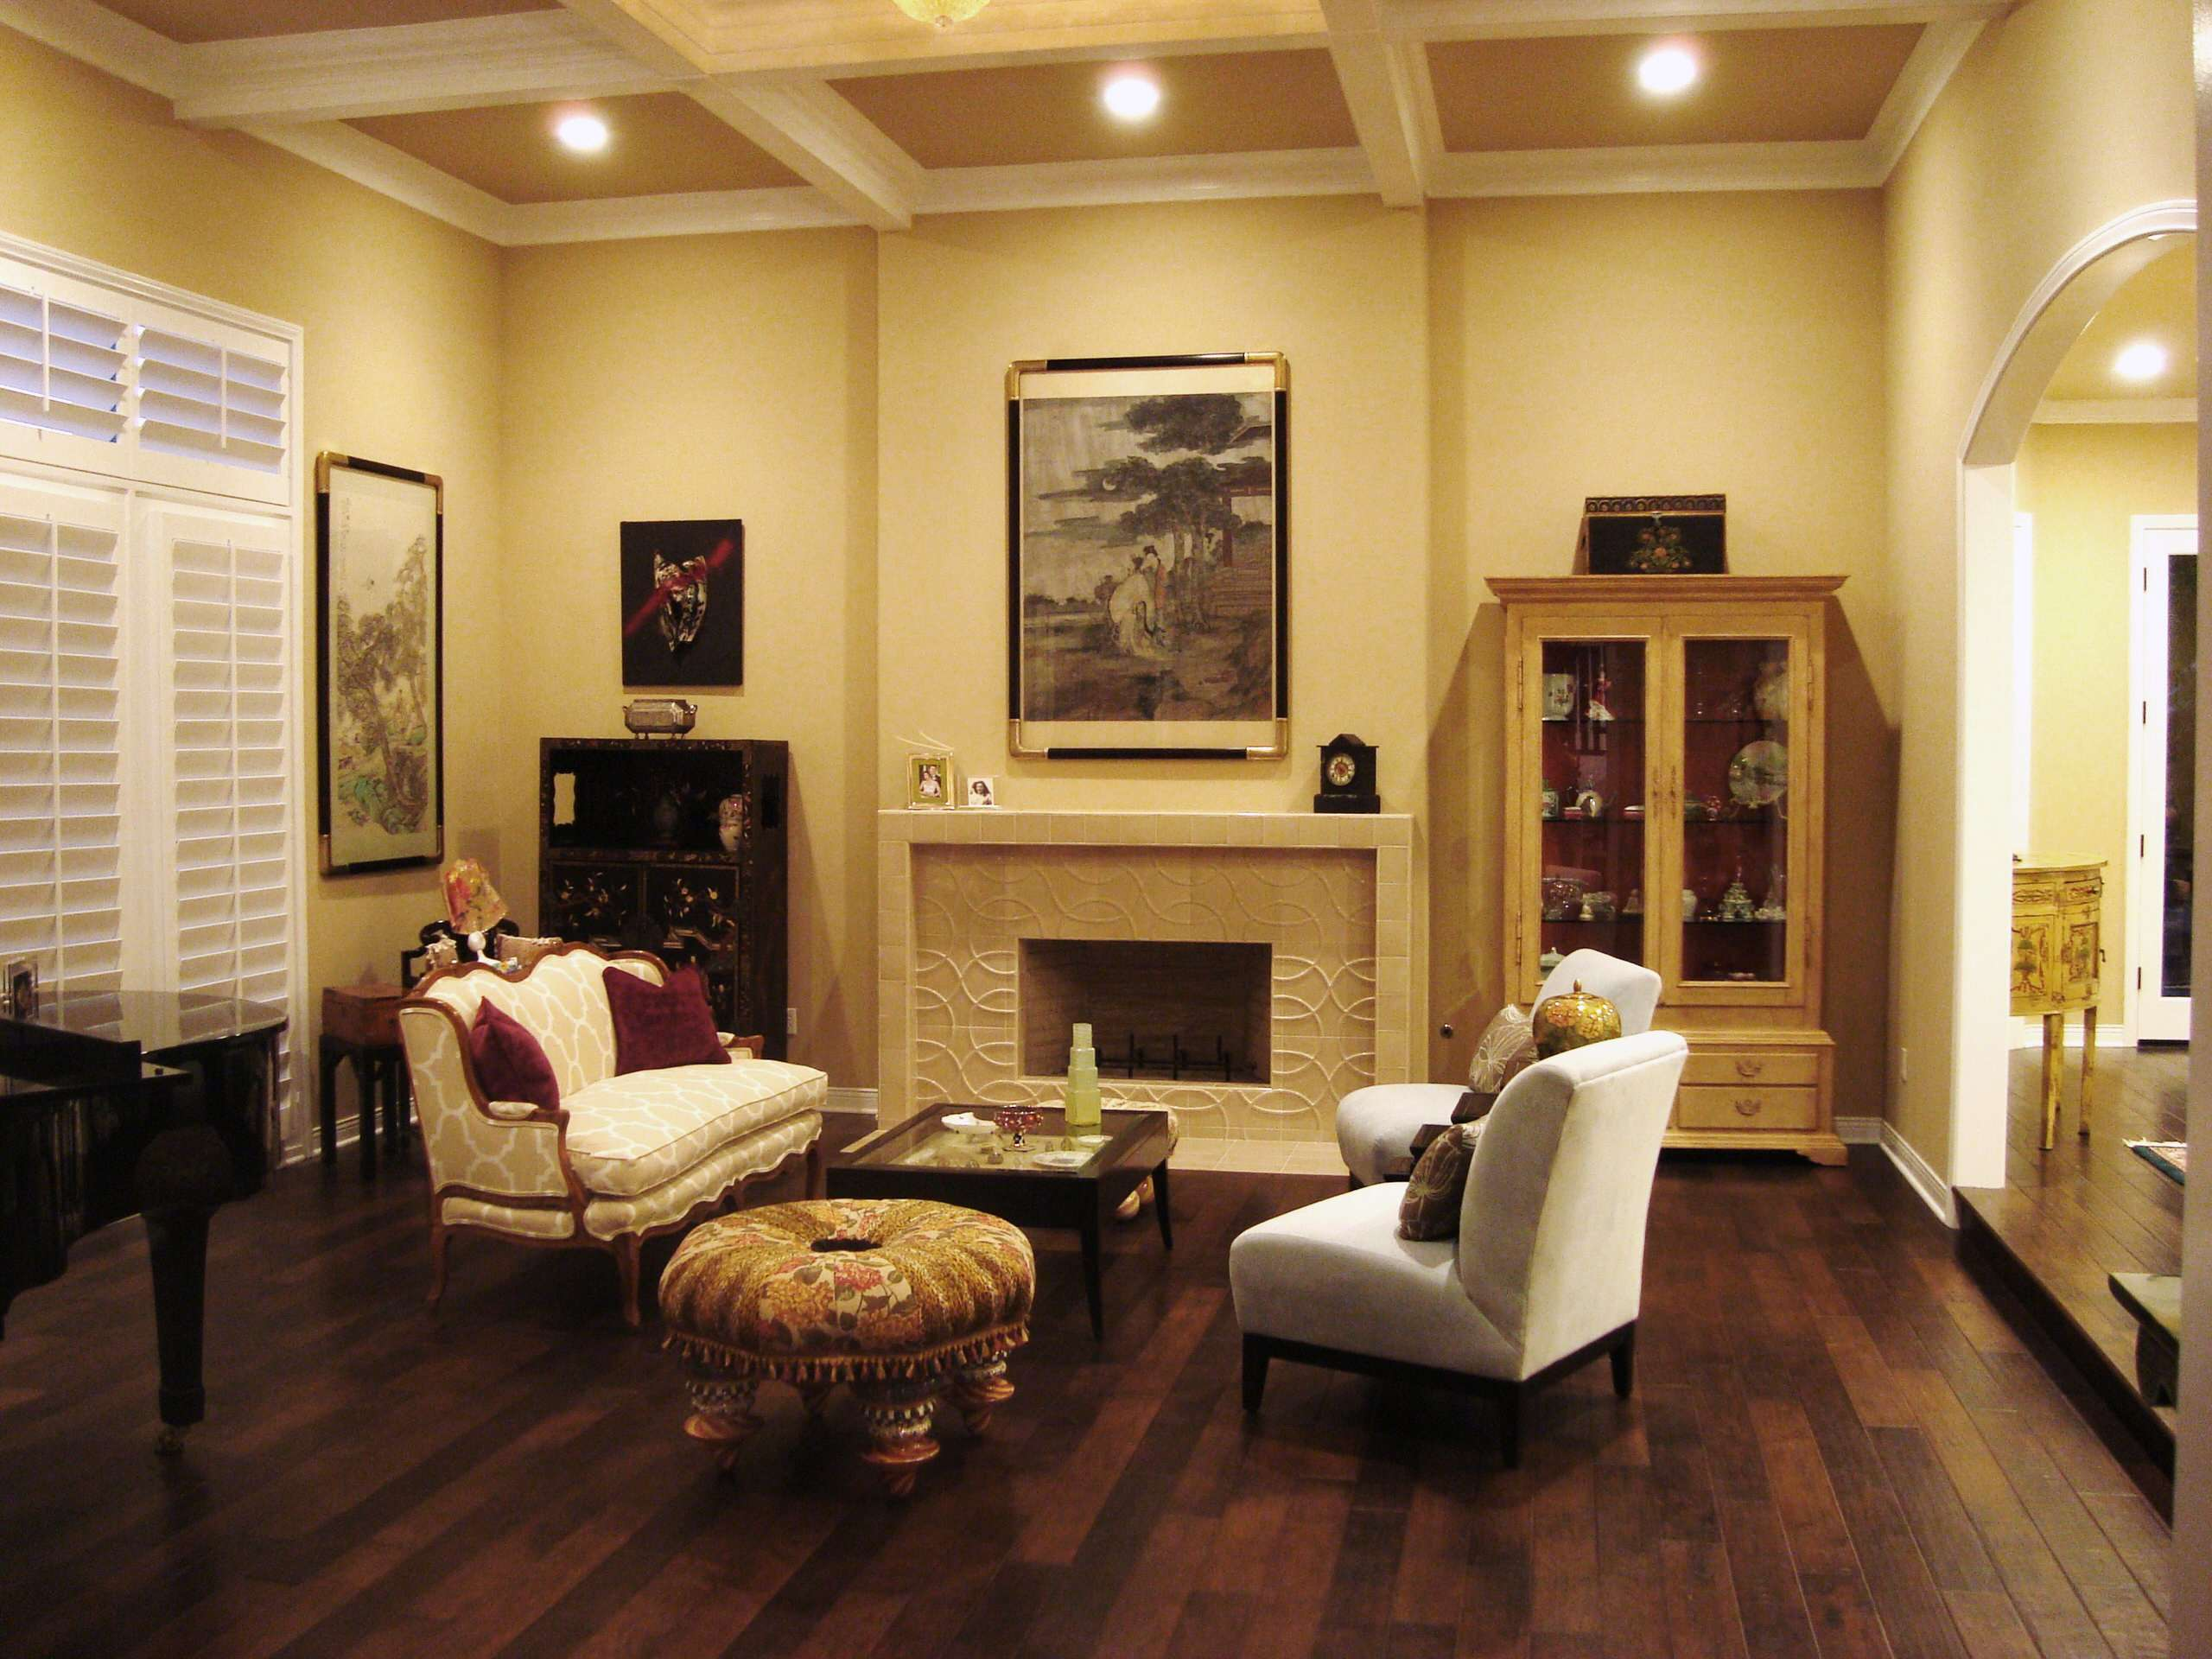 The New Nolan Living Room- beautiful tile Fireplace and Baby Grand Piano